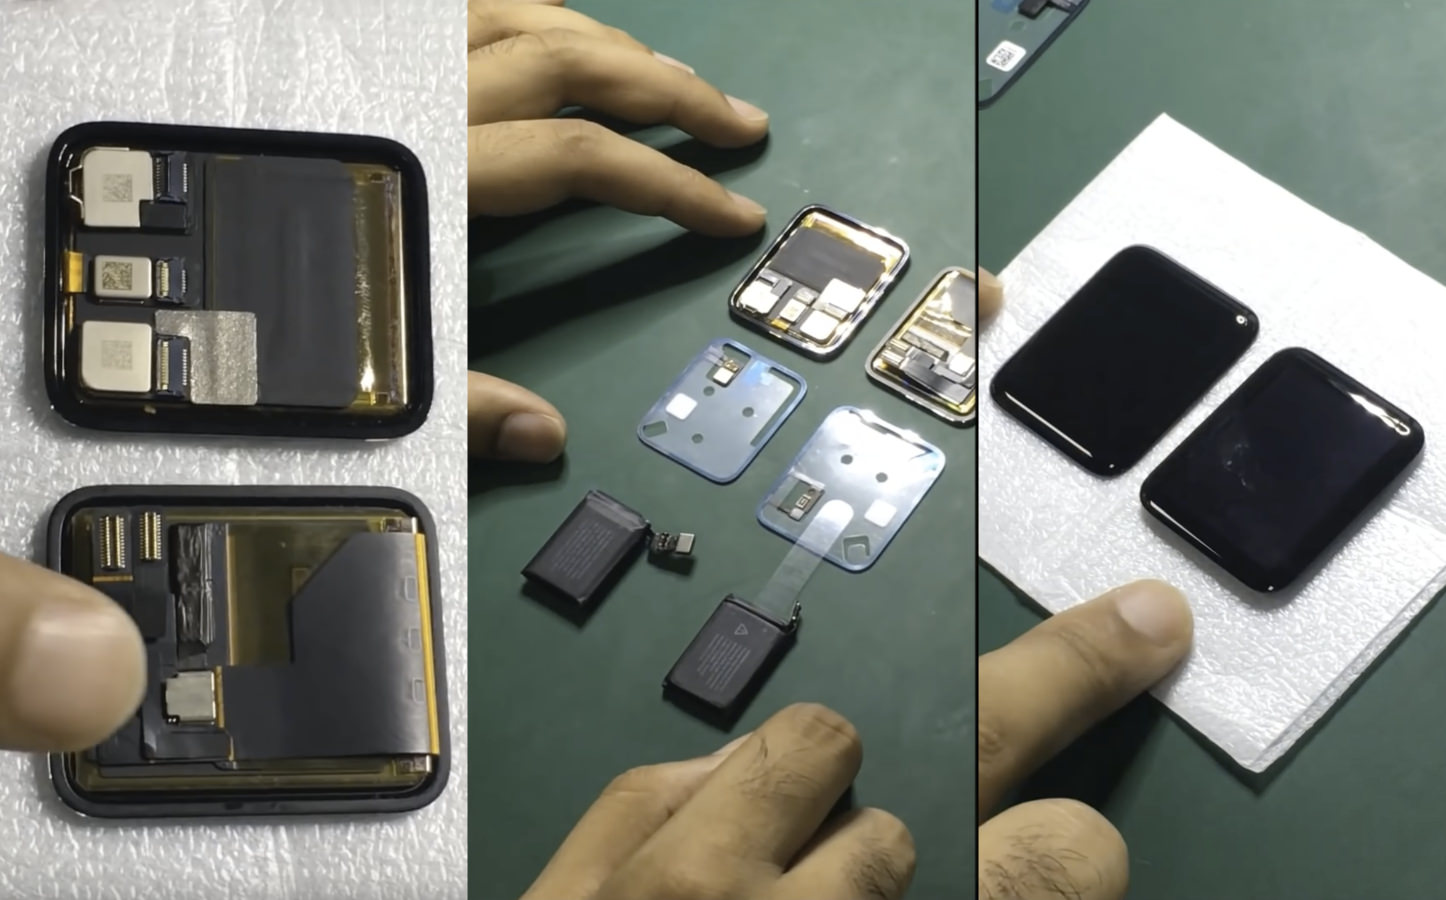 Apple watch 2 battery and components